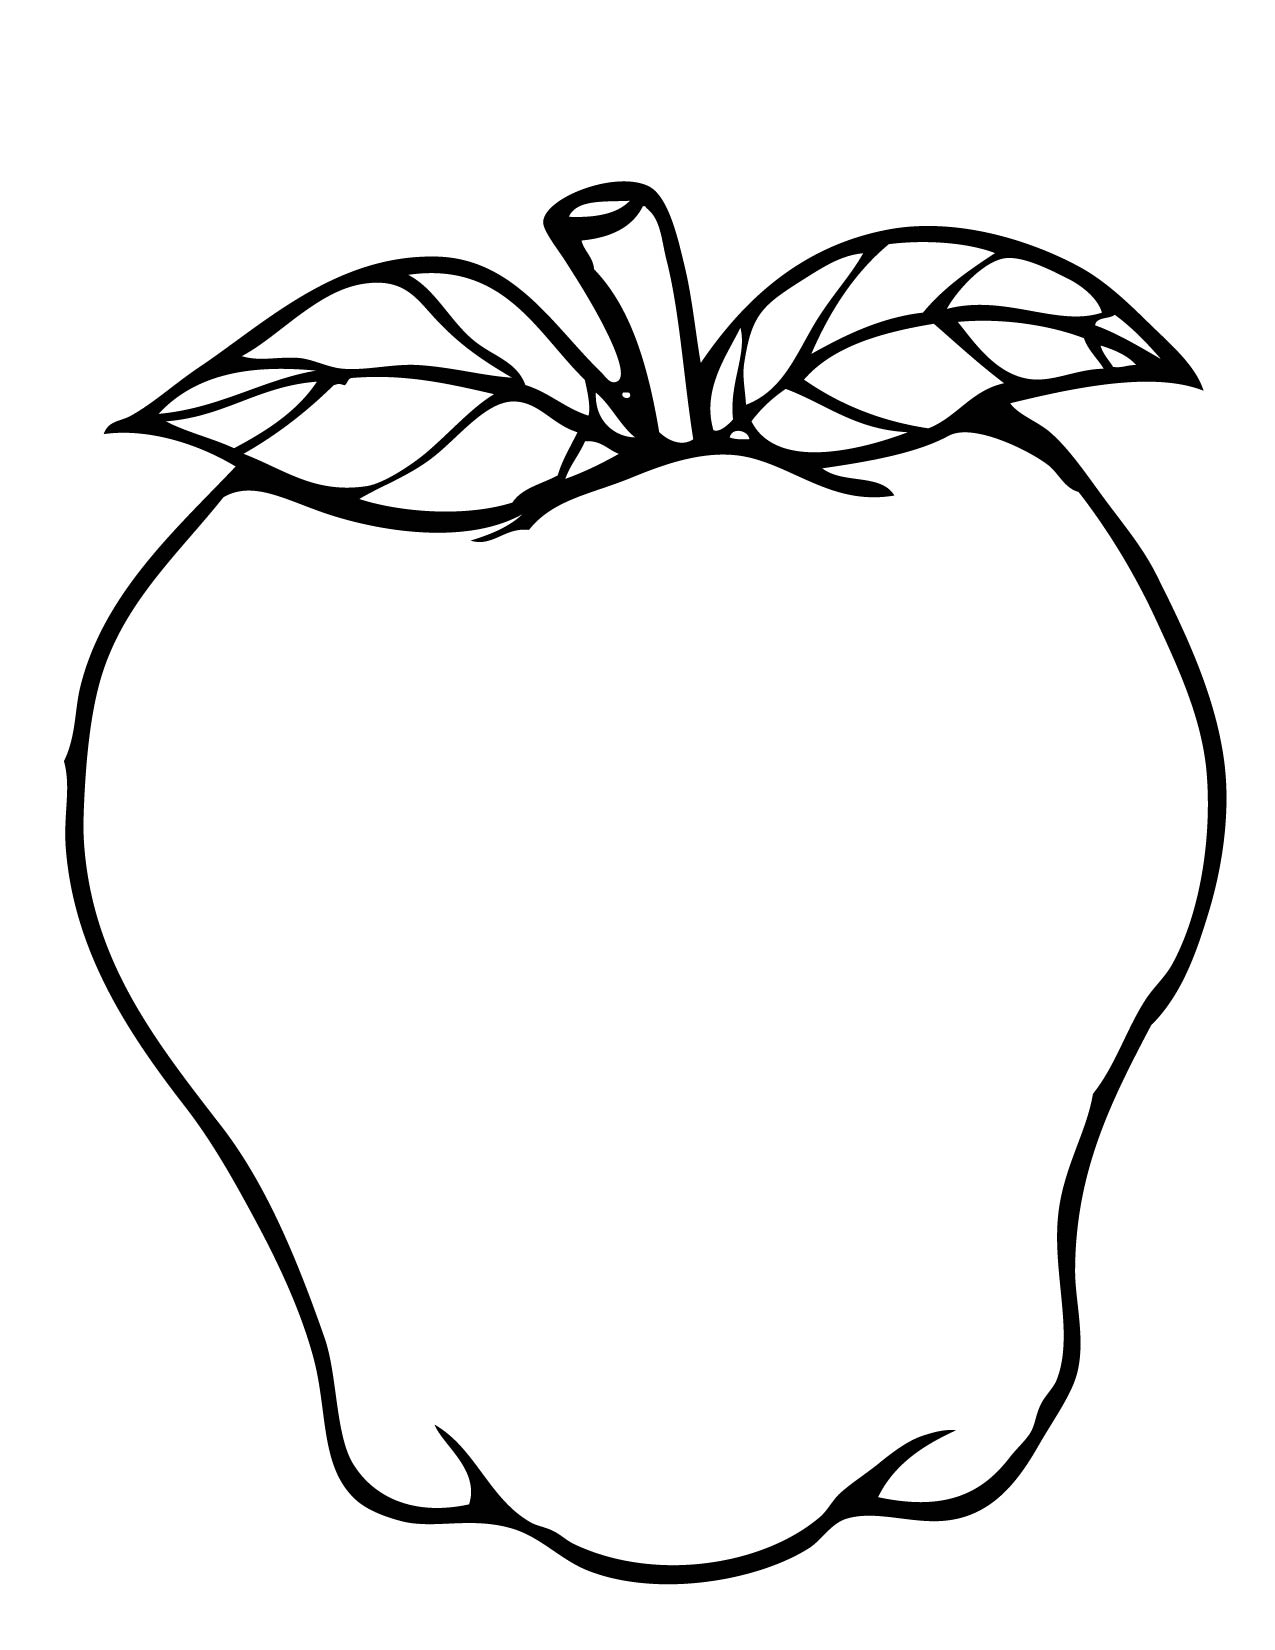 colouring images of apple apple coloring pages to print apple of colouring images